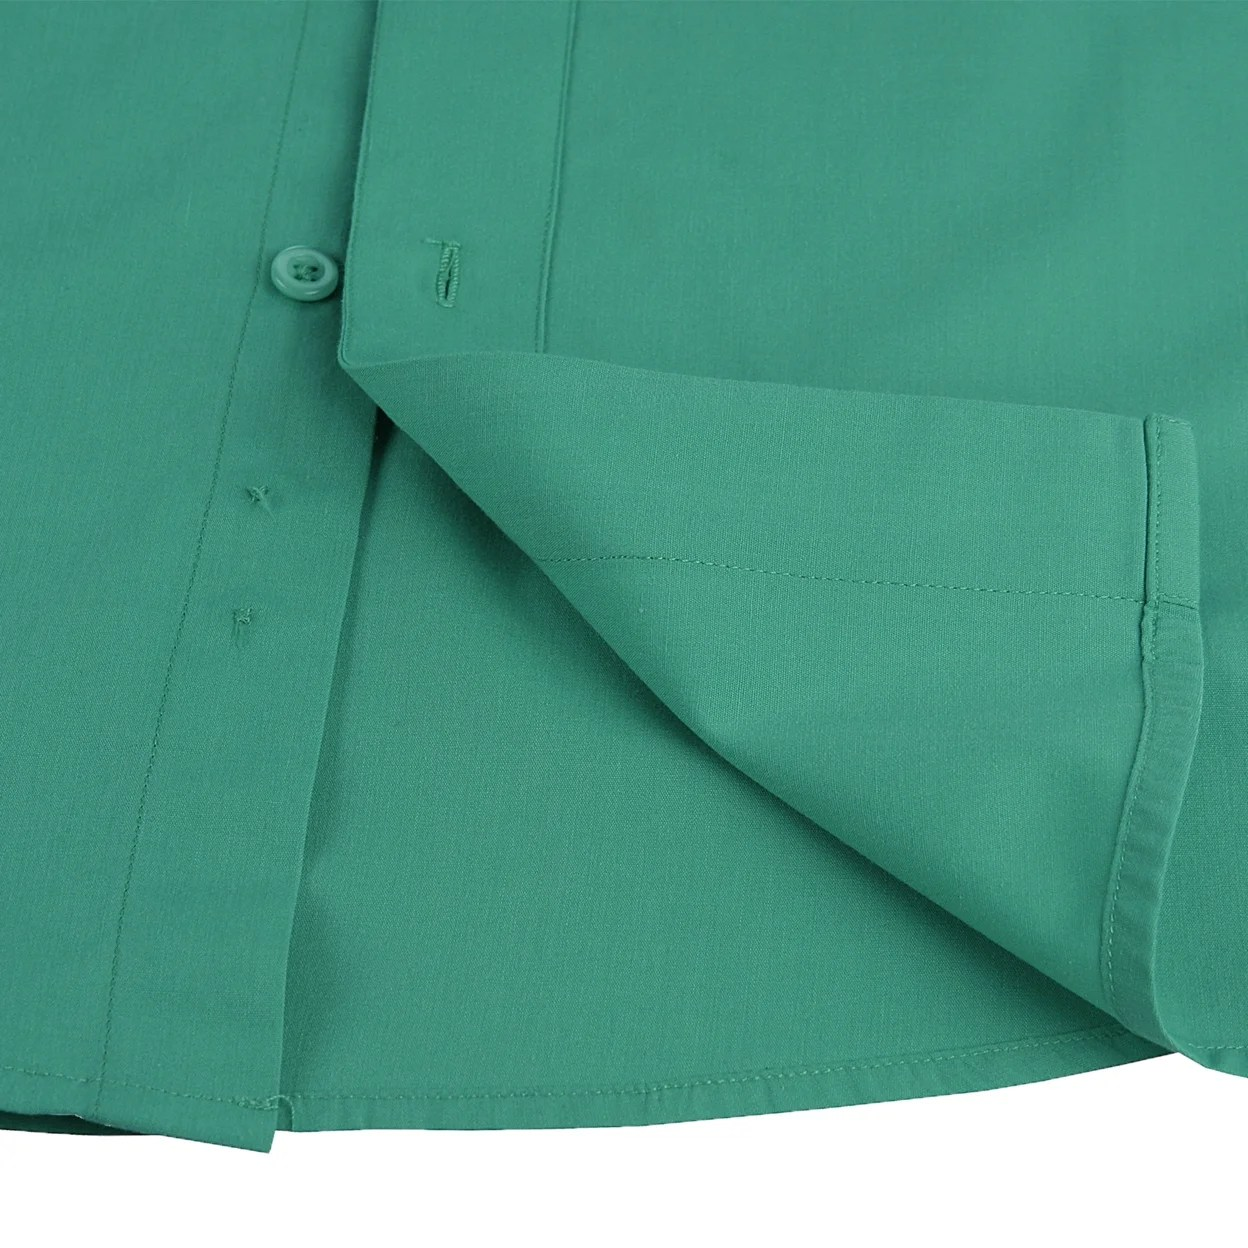 Roman Giardino Men S Dress Shirt Long Sleeve Convertible Cuffs The Italian Collar Cotton With Free Cuff Links Turquoise Overstock 31160590